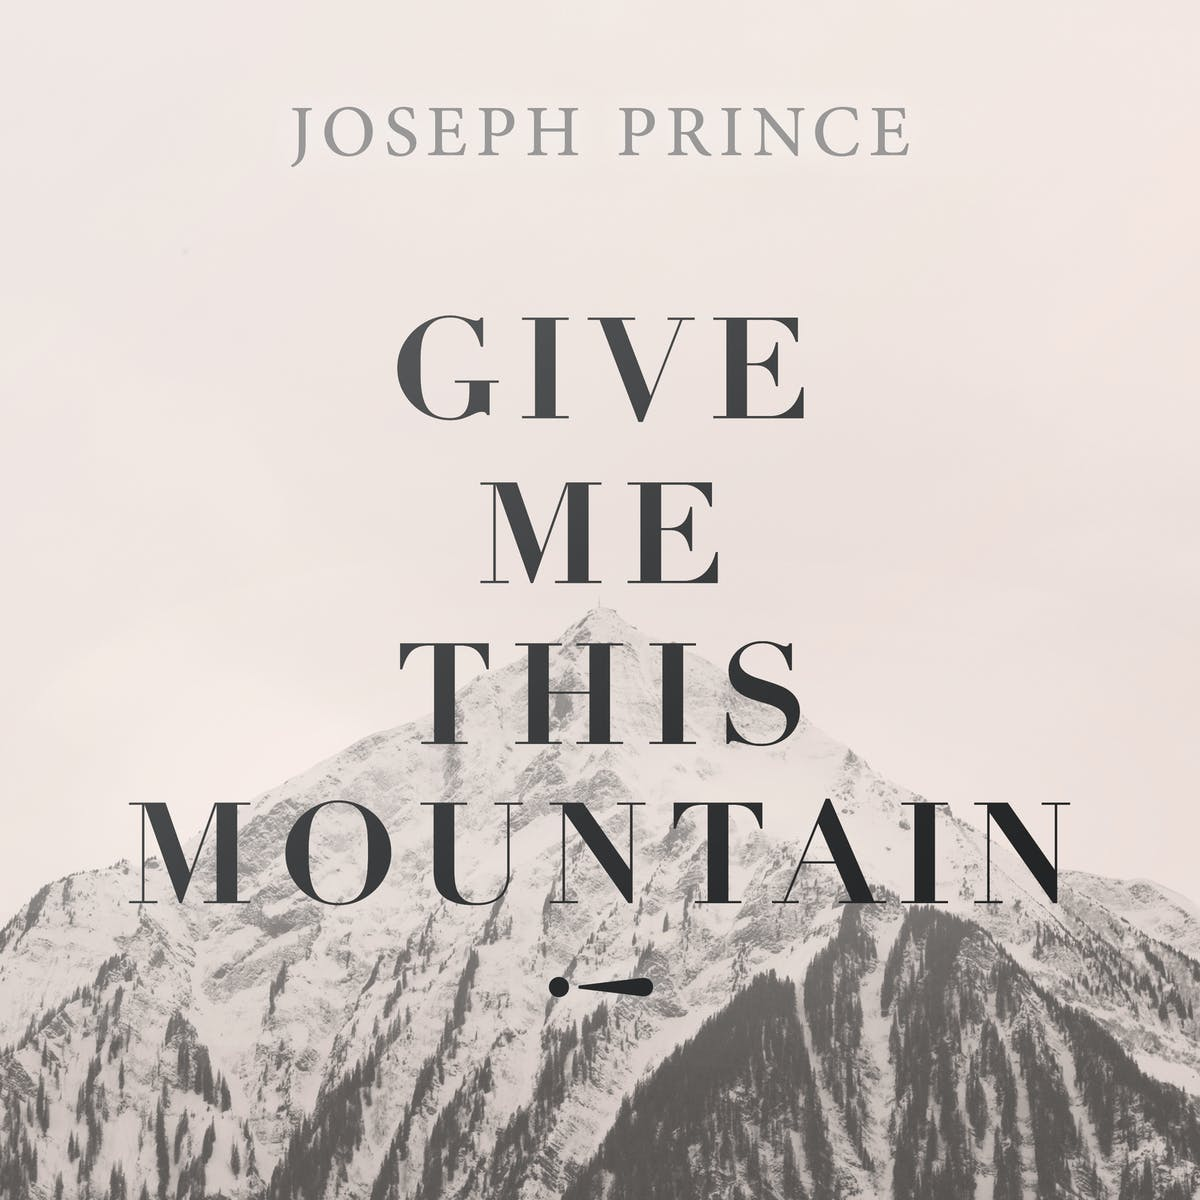 Give Me This Mountain! | Official Joseph Prince Sermon Notes